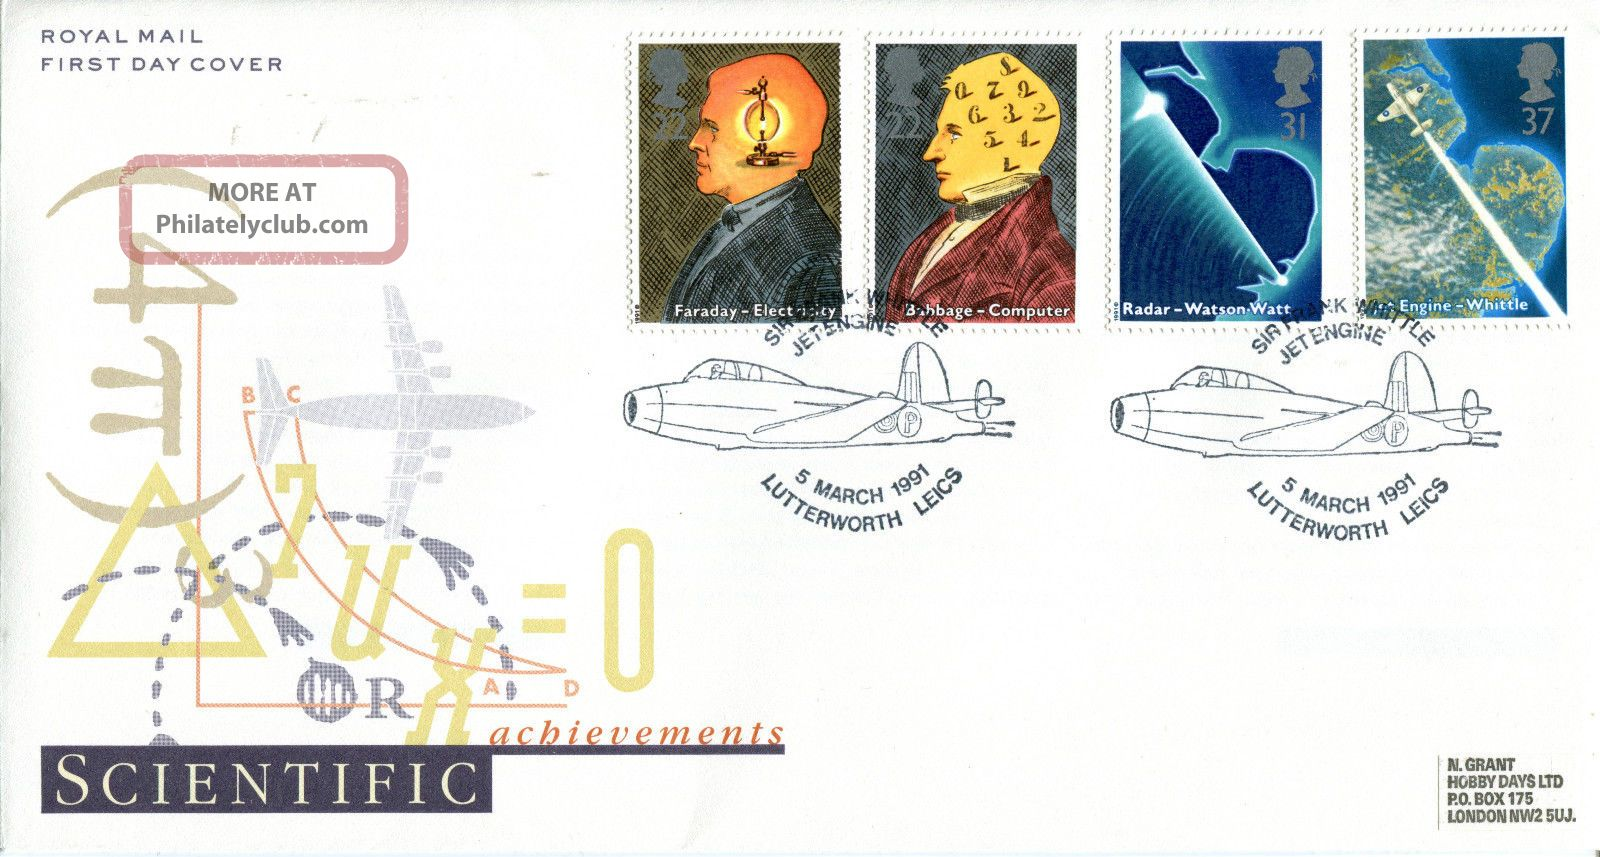 5 March 1991 Scientific Achievement Rm First Day Cover Lutterworth Shs Transportation photo